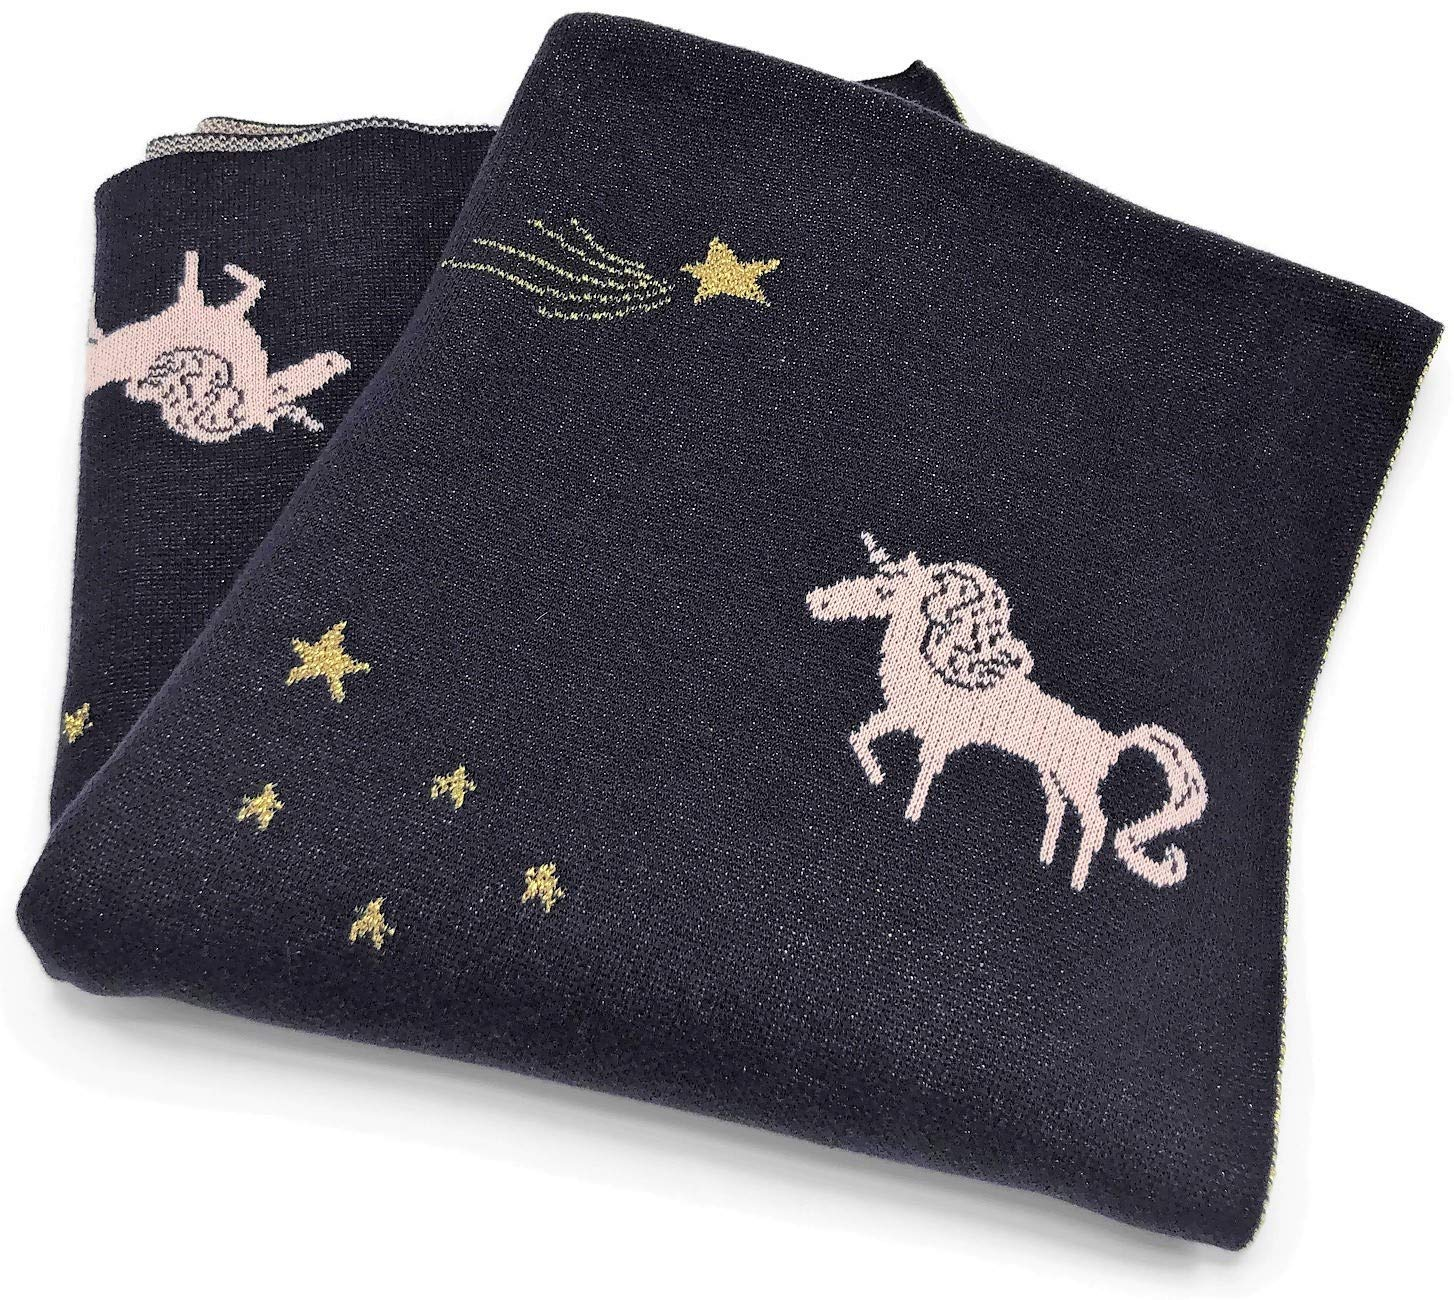 Frolics Kids Collection Pink Unicorns with Gold Stars Navy Blue Kids Throw Blanket 45'' x 55'' by Frolics